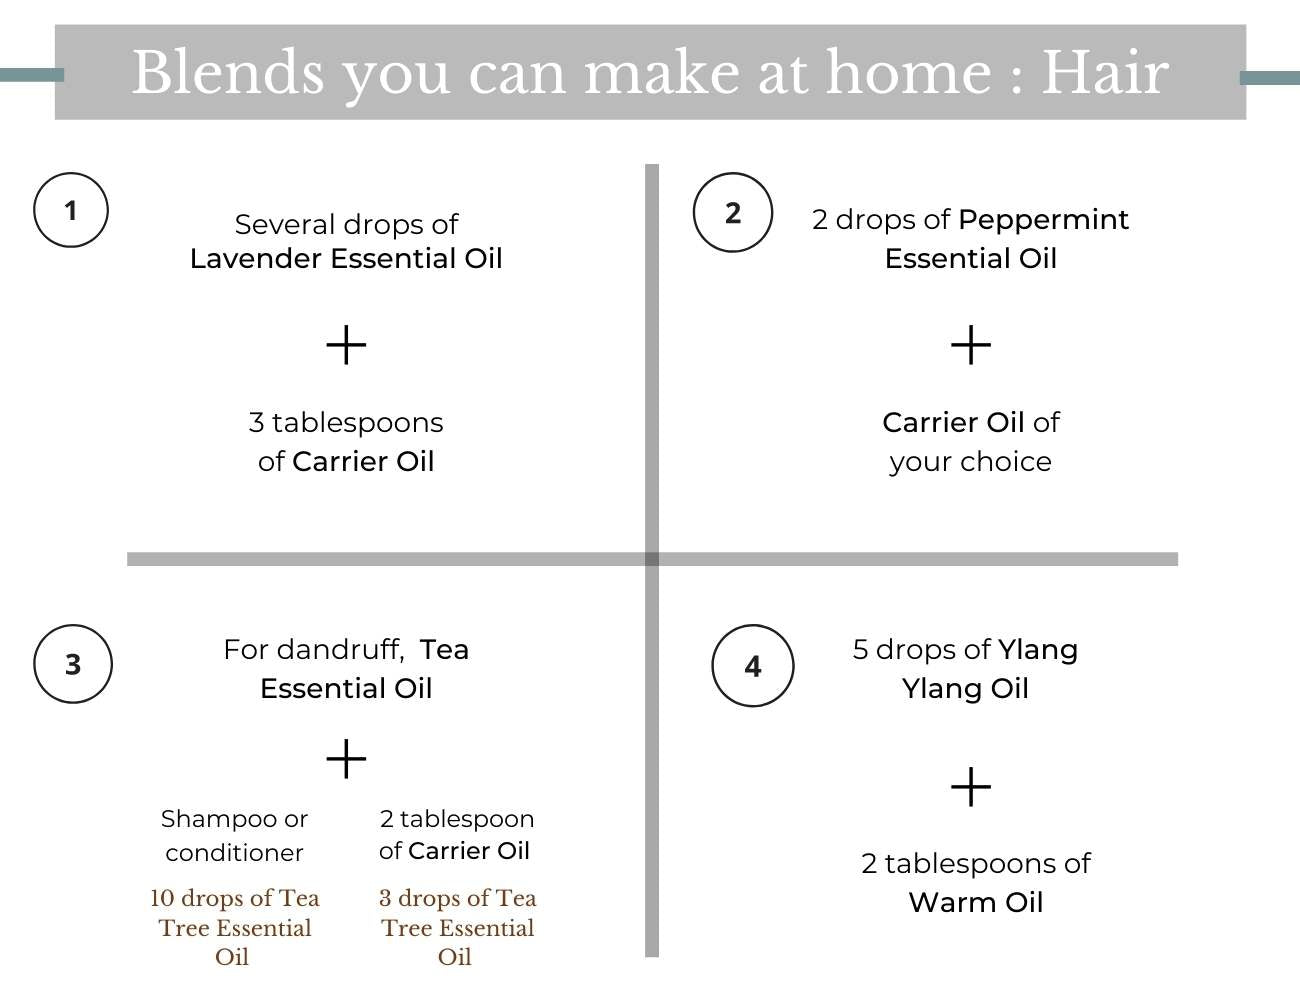 This is an image showing how to Blend Essential Oils for Hair.